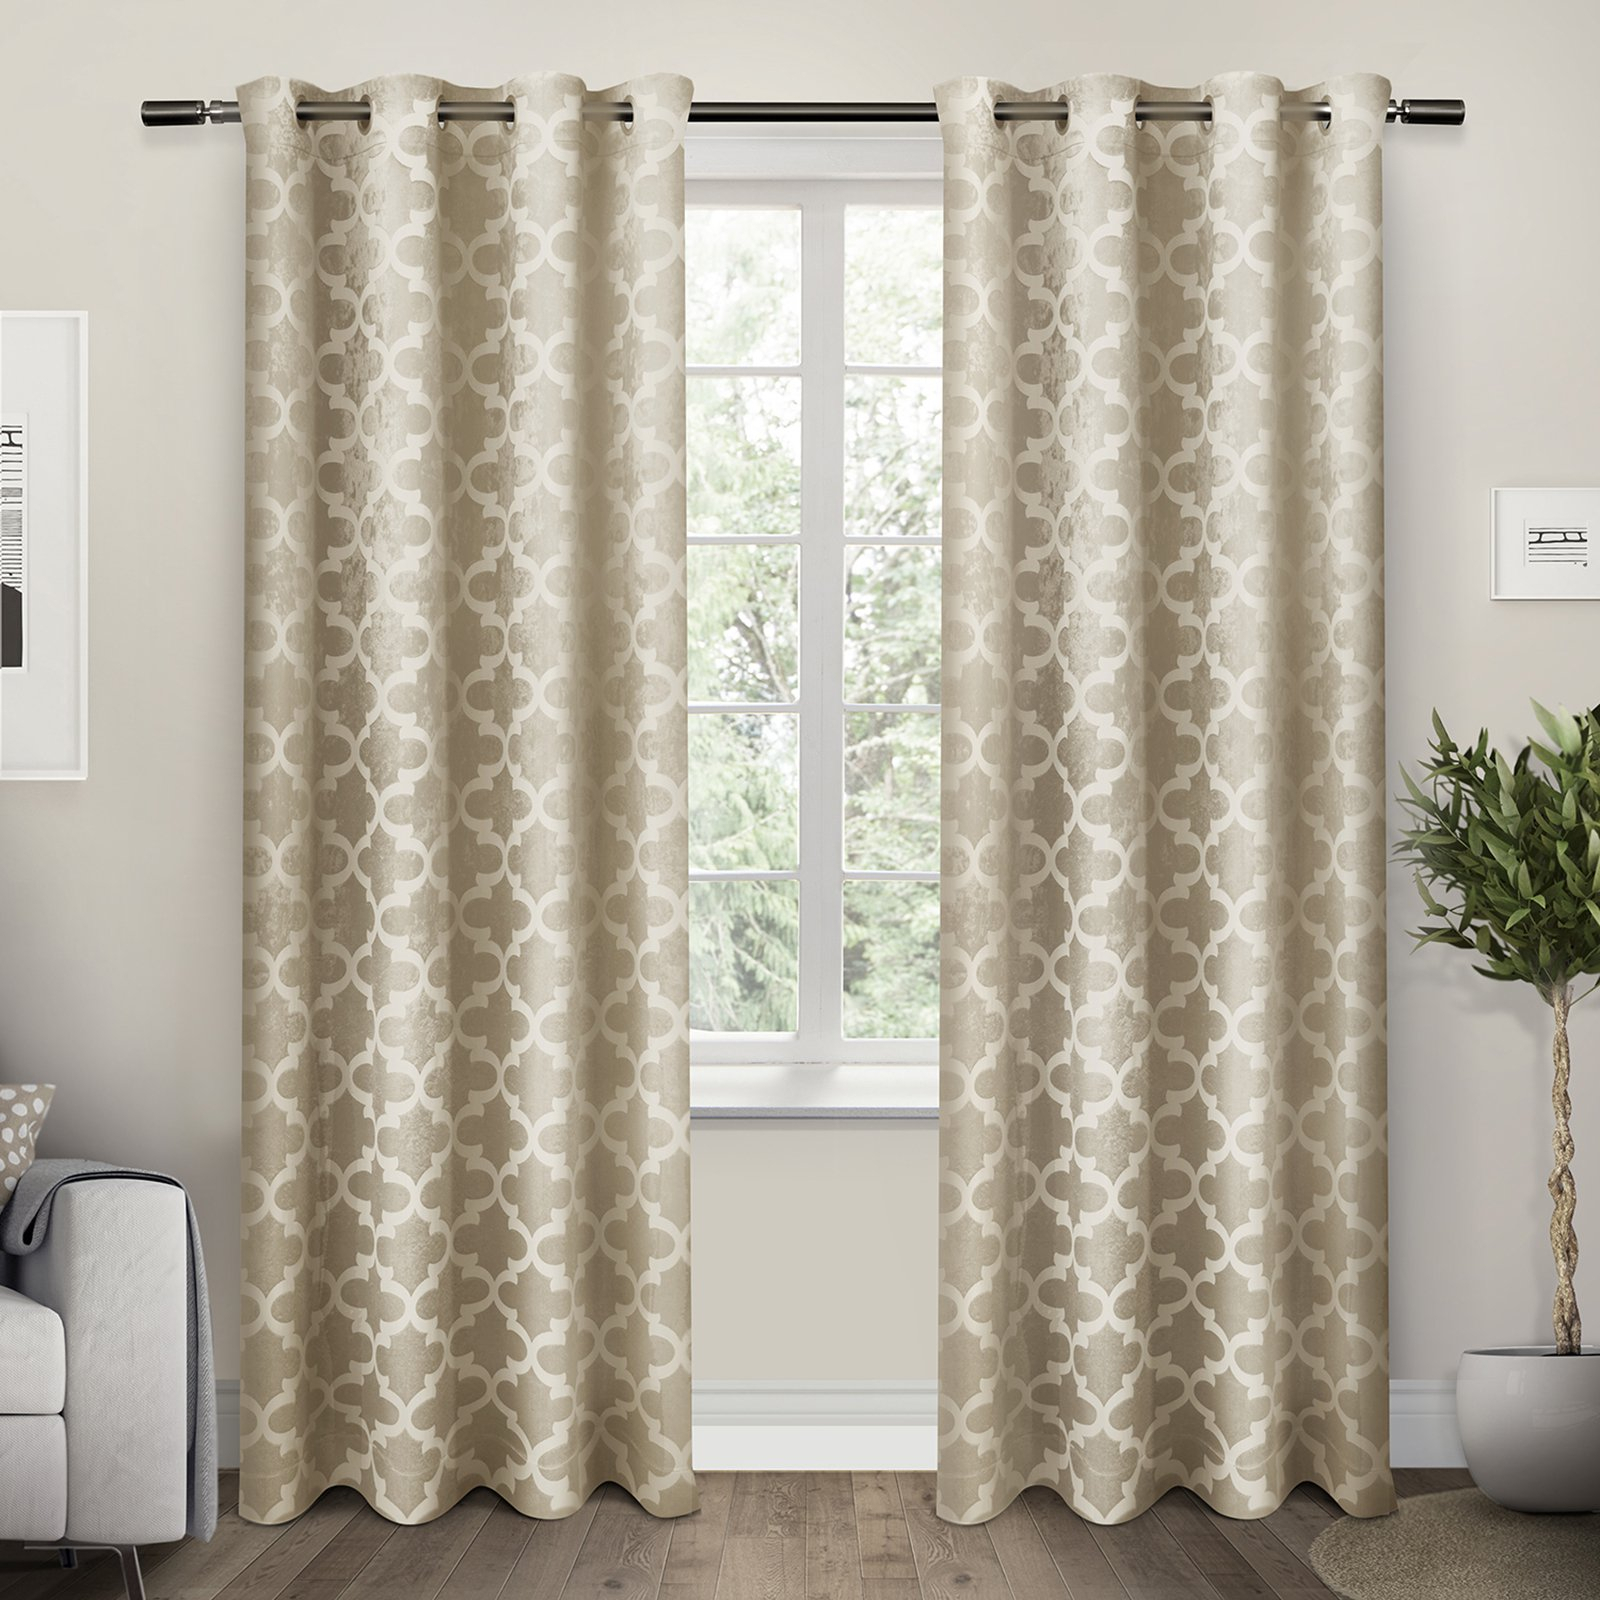 Cartago Woven Blackout Grommet Top Window Curtain Panel Pair Pertaining To Woven Blackout Grommet Top Curtain Panel Pairs (View 10 of 30)